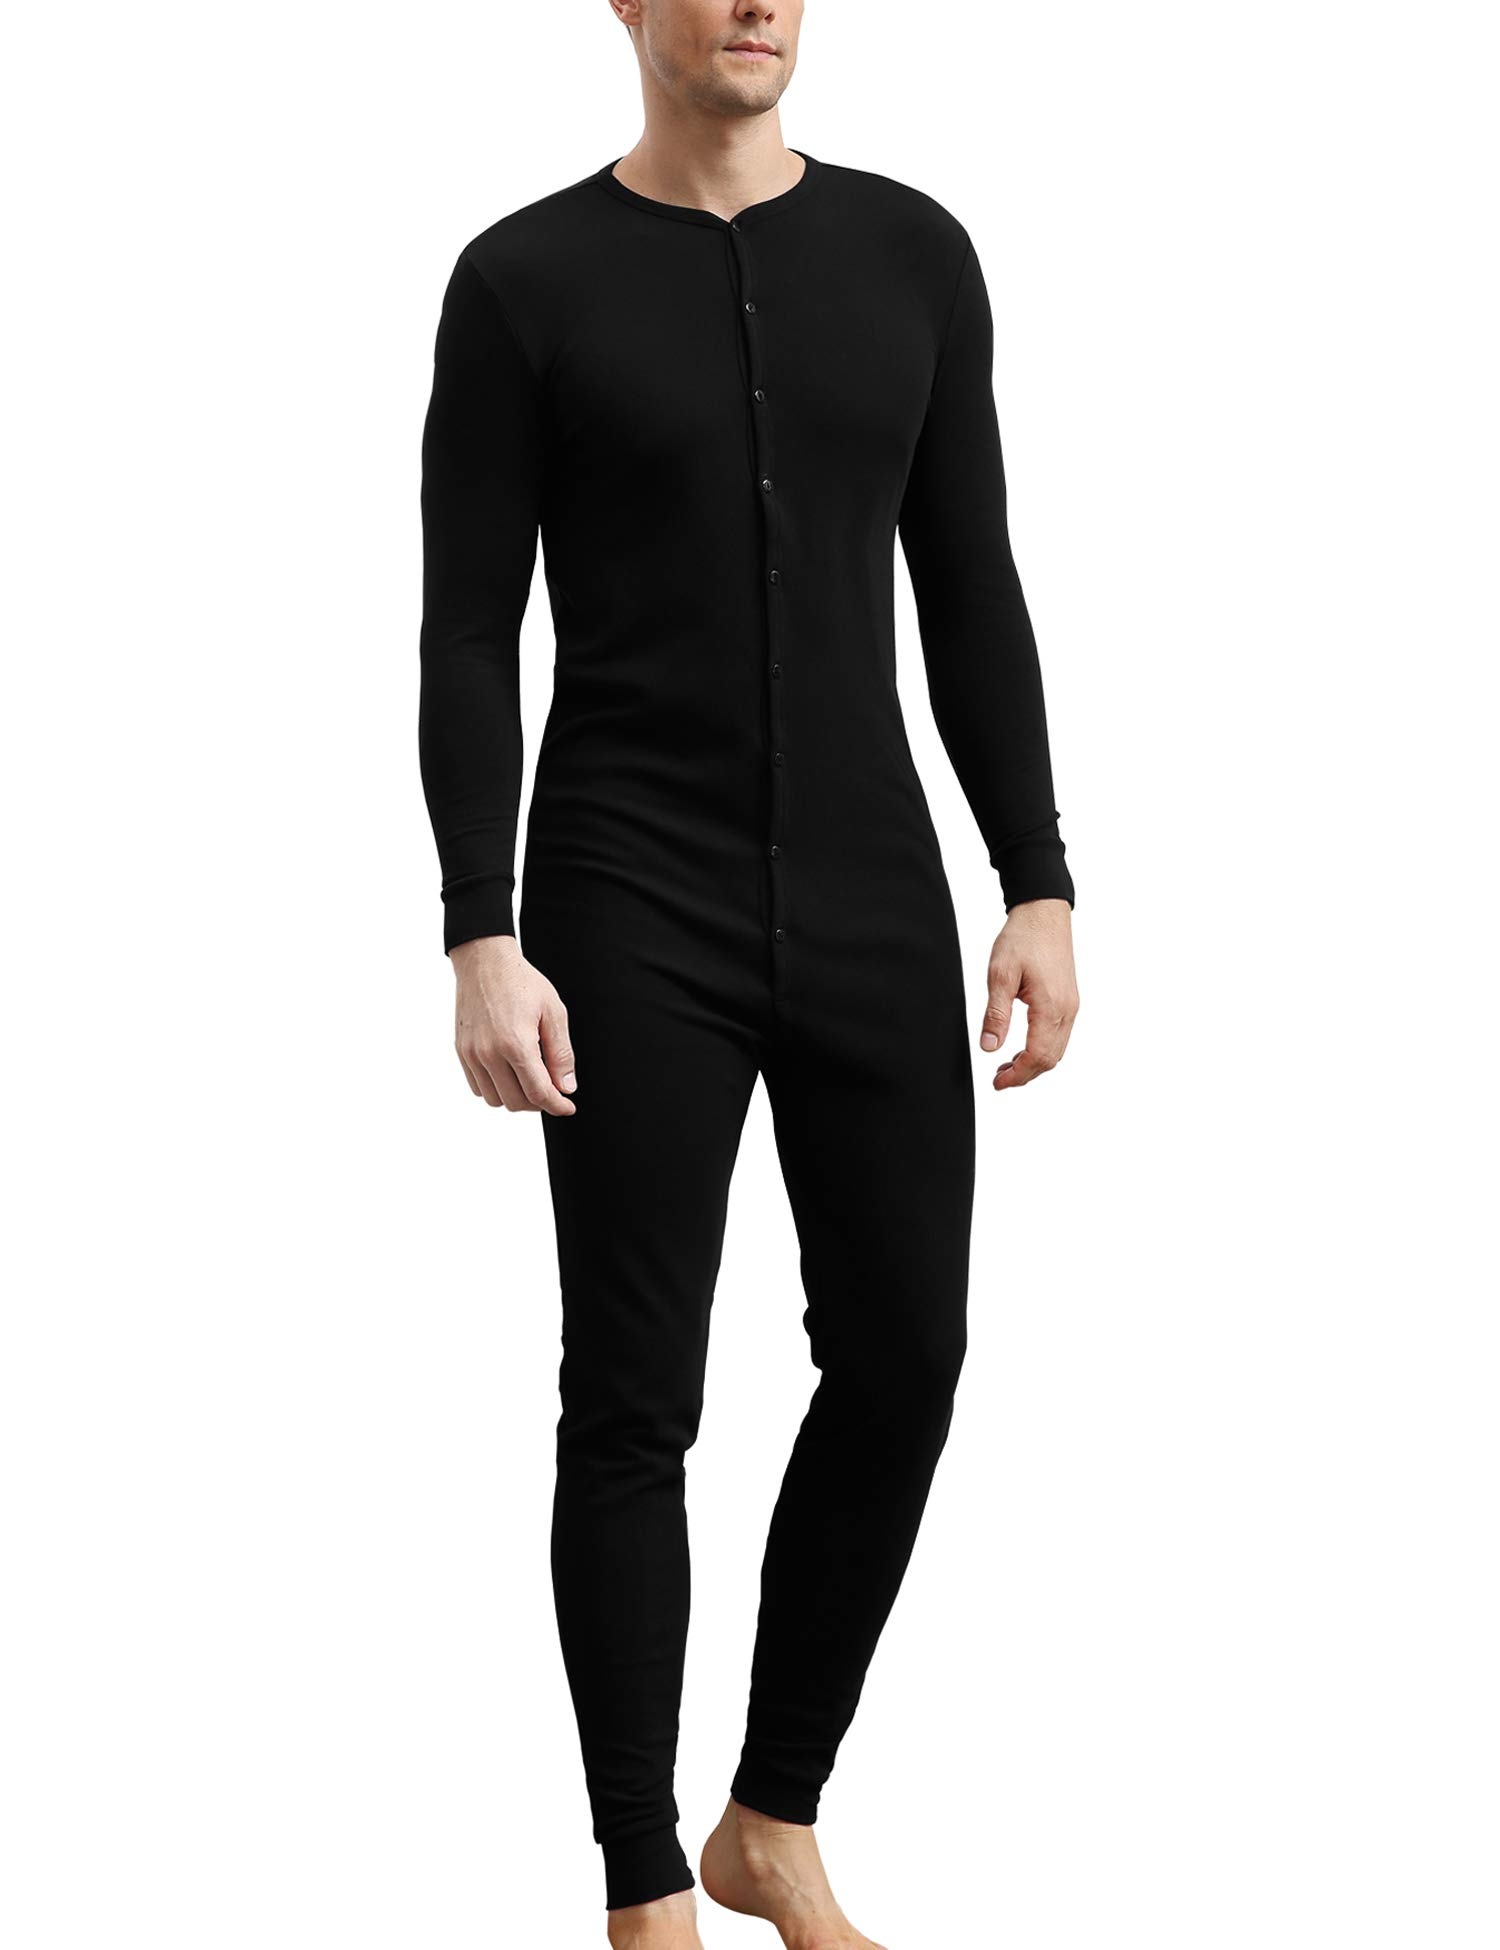 COLORFULLEAF Mens Cotton Thermal Underwear Union Suits Henley Onesies Base Layer (Black, L) by COLORFULLEAF